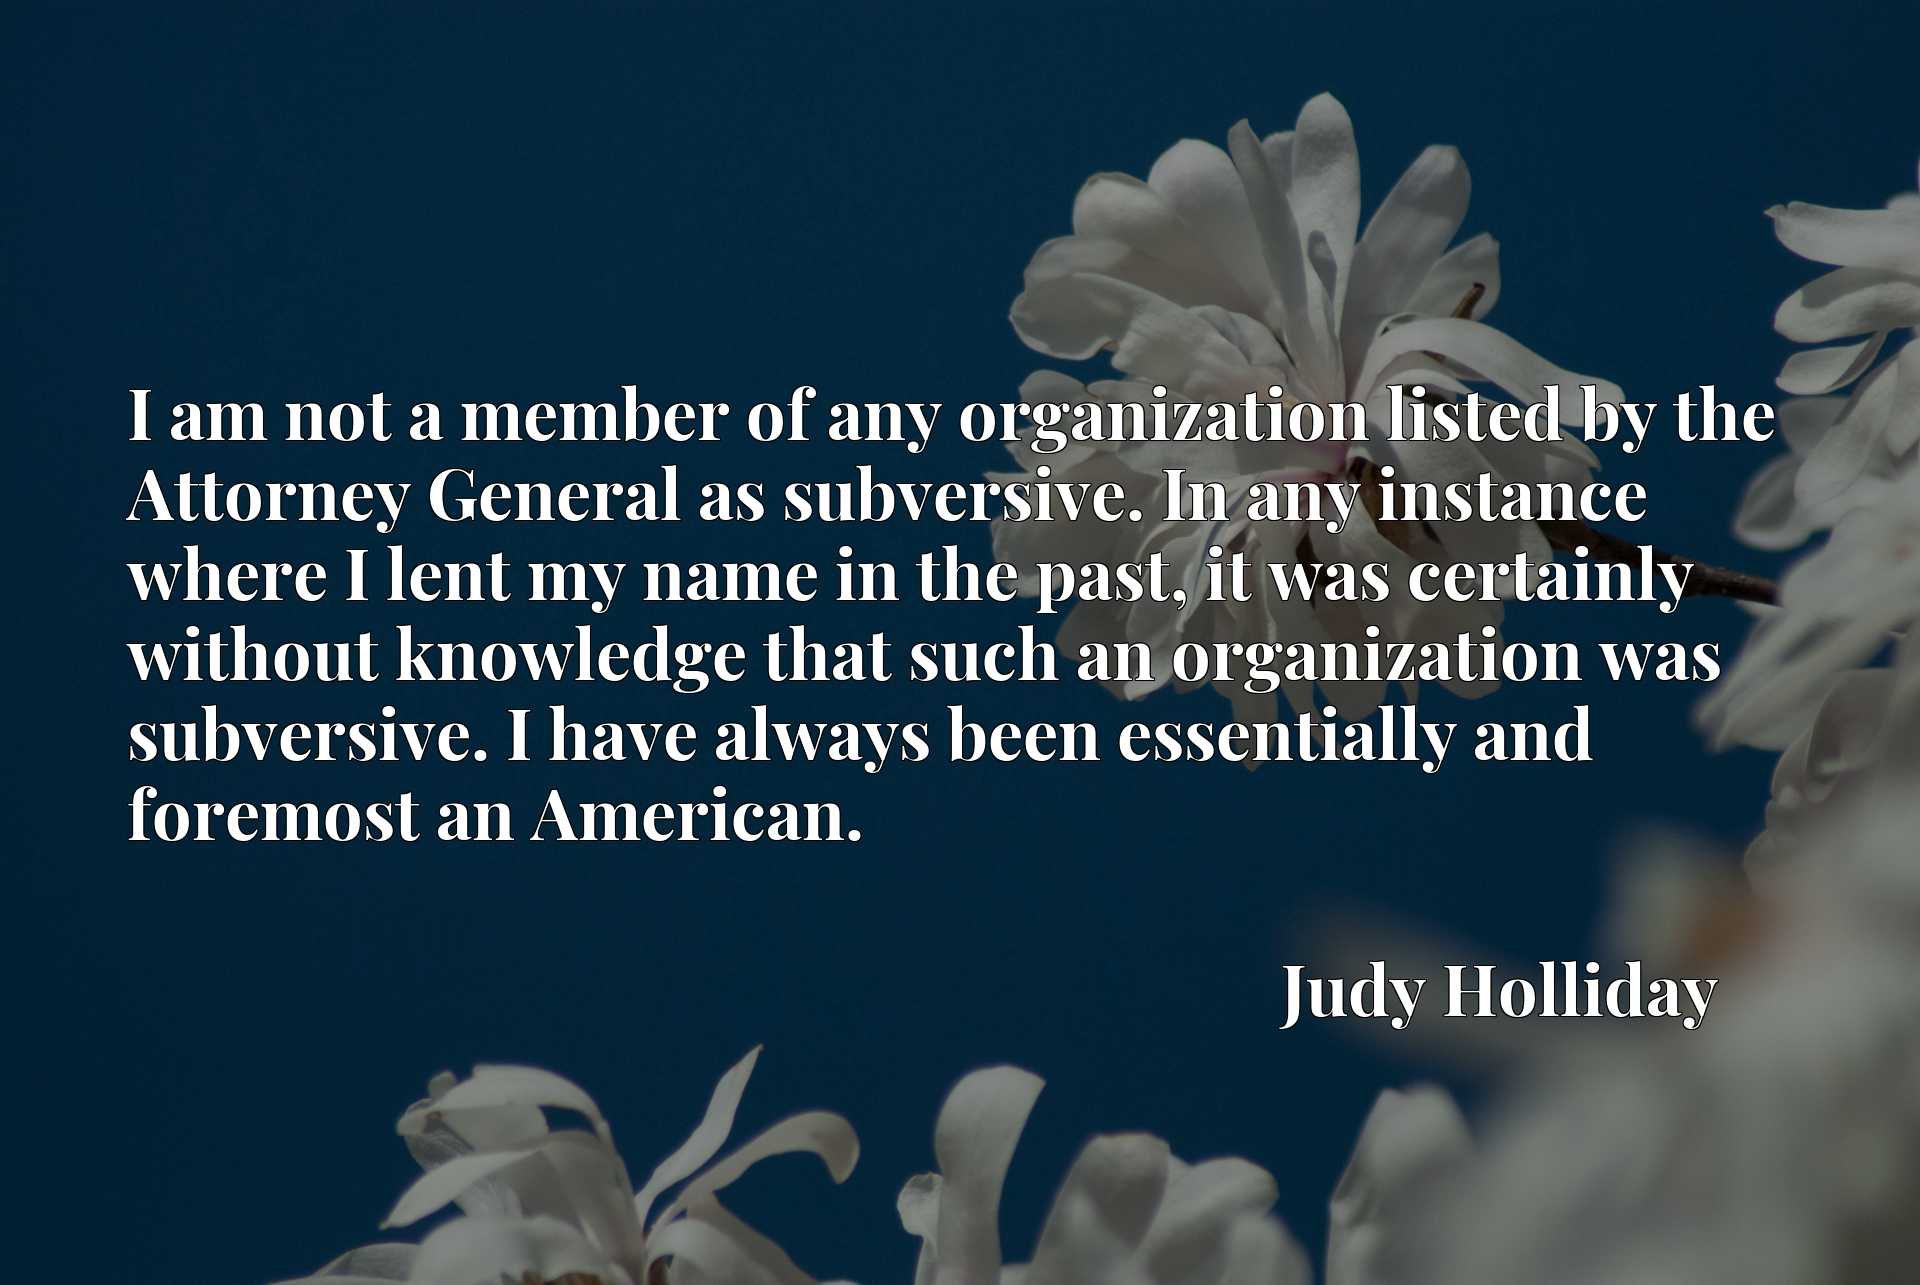 Quote Picture :I am not a member of any organization listed by the Attorney General as subversive. In any instance where I lent my name in the past, it was certainly without knowledge that such an organization was subversive. I have always been essentially and foremost an American.